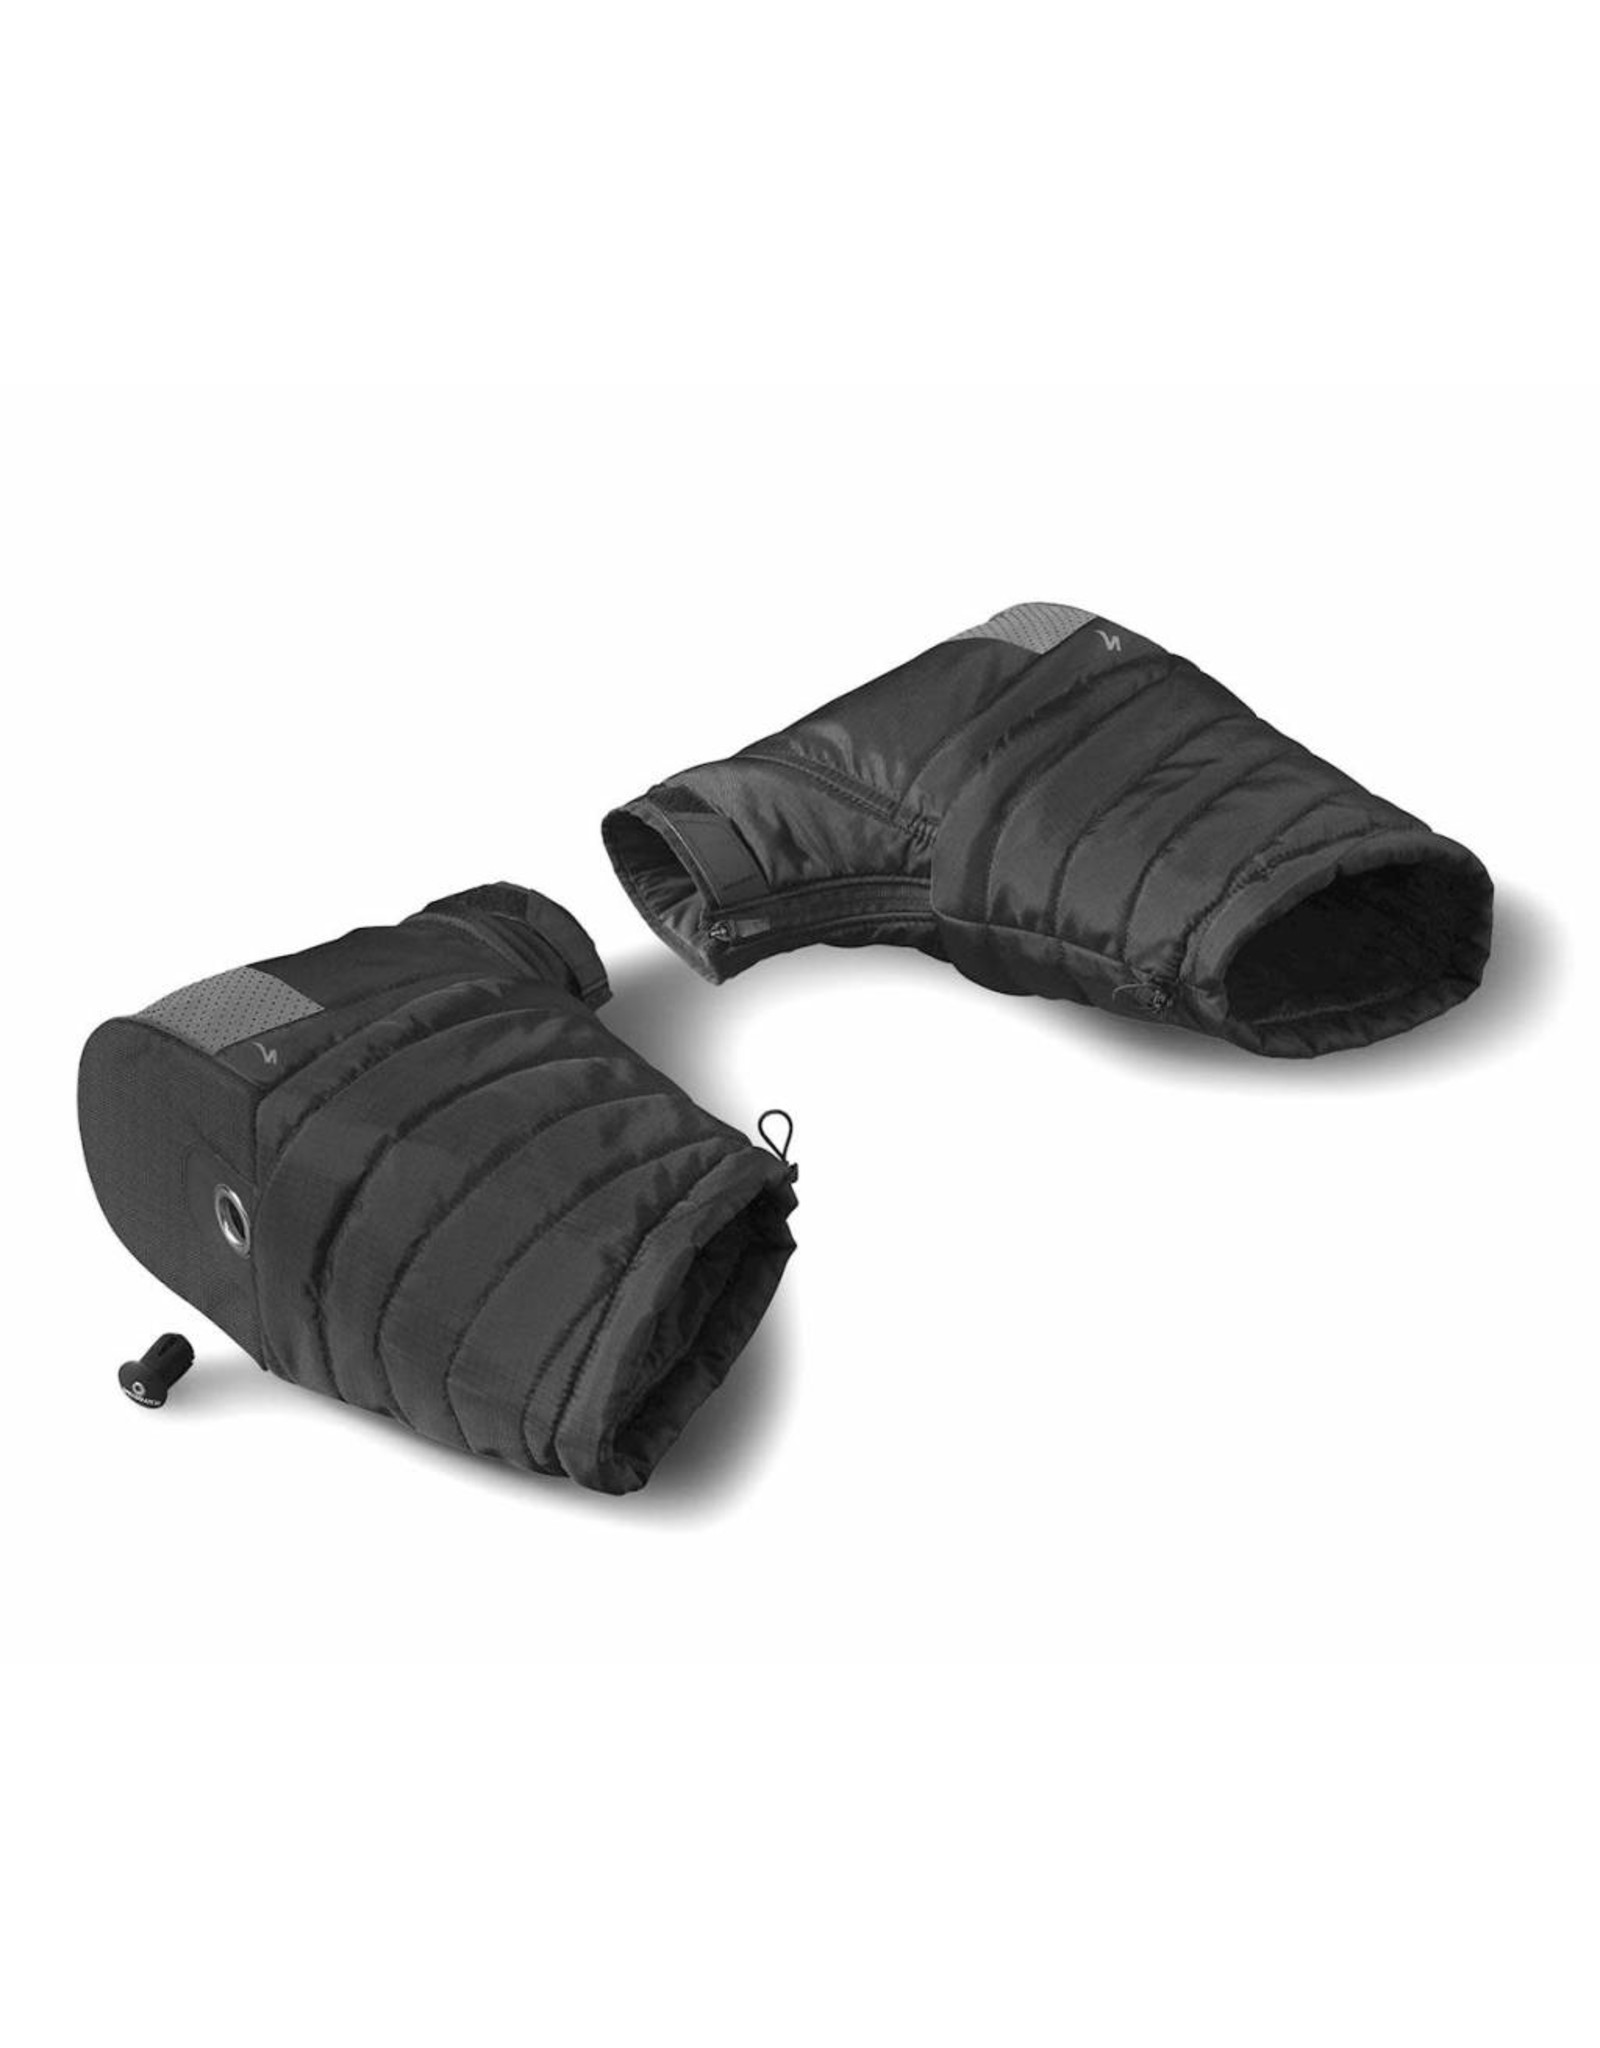 SPECIALIZED Specialized Insulator Fat Mitts - Black - OSFA